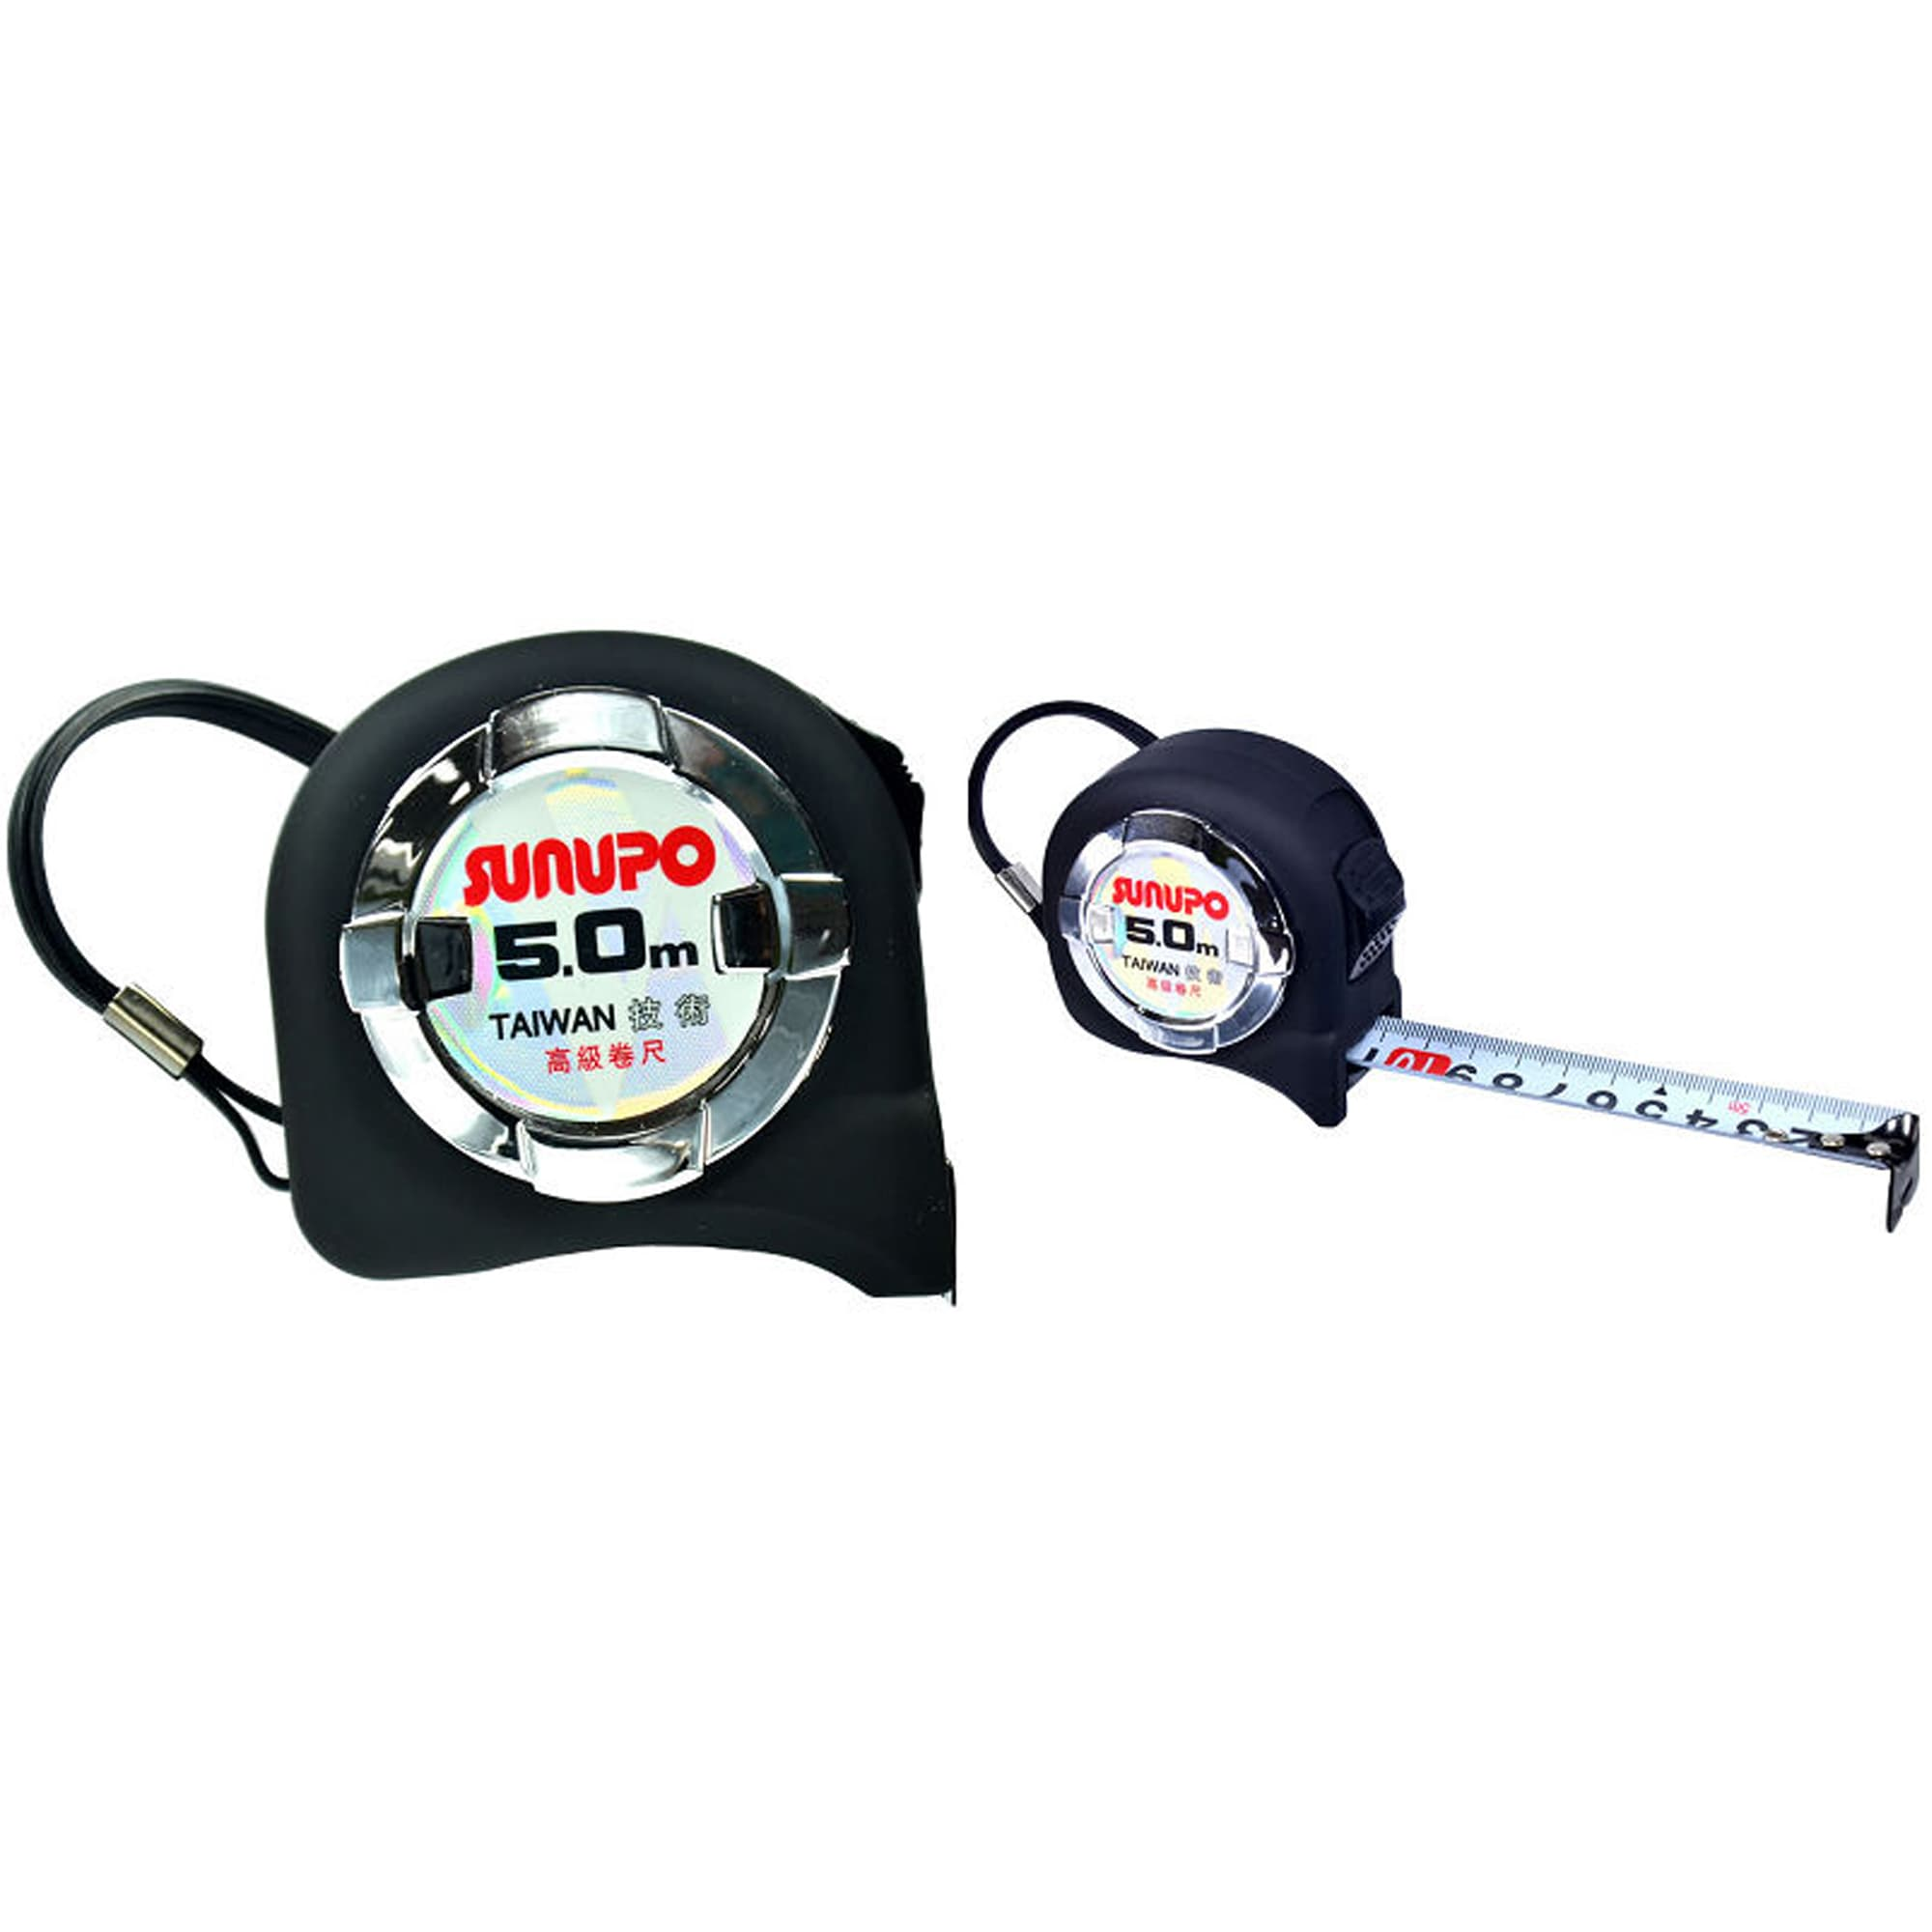 steel tape, how to read a measuring tape in inches, types of measurement, DTA, tape measure with hologram sticker